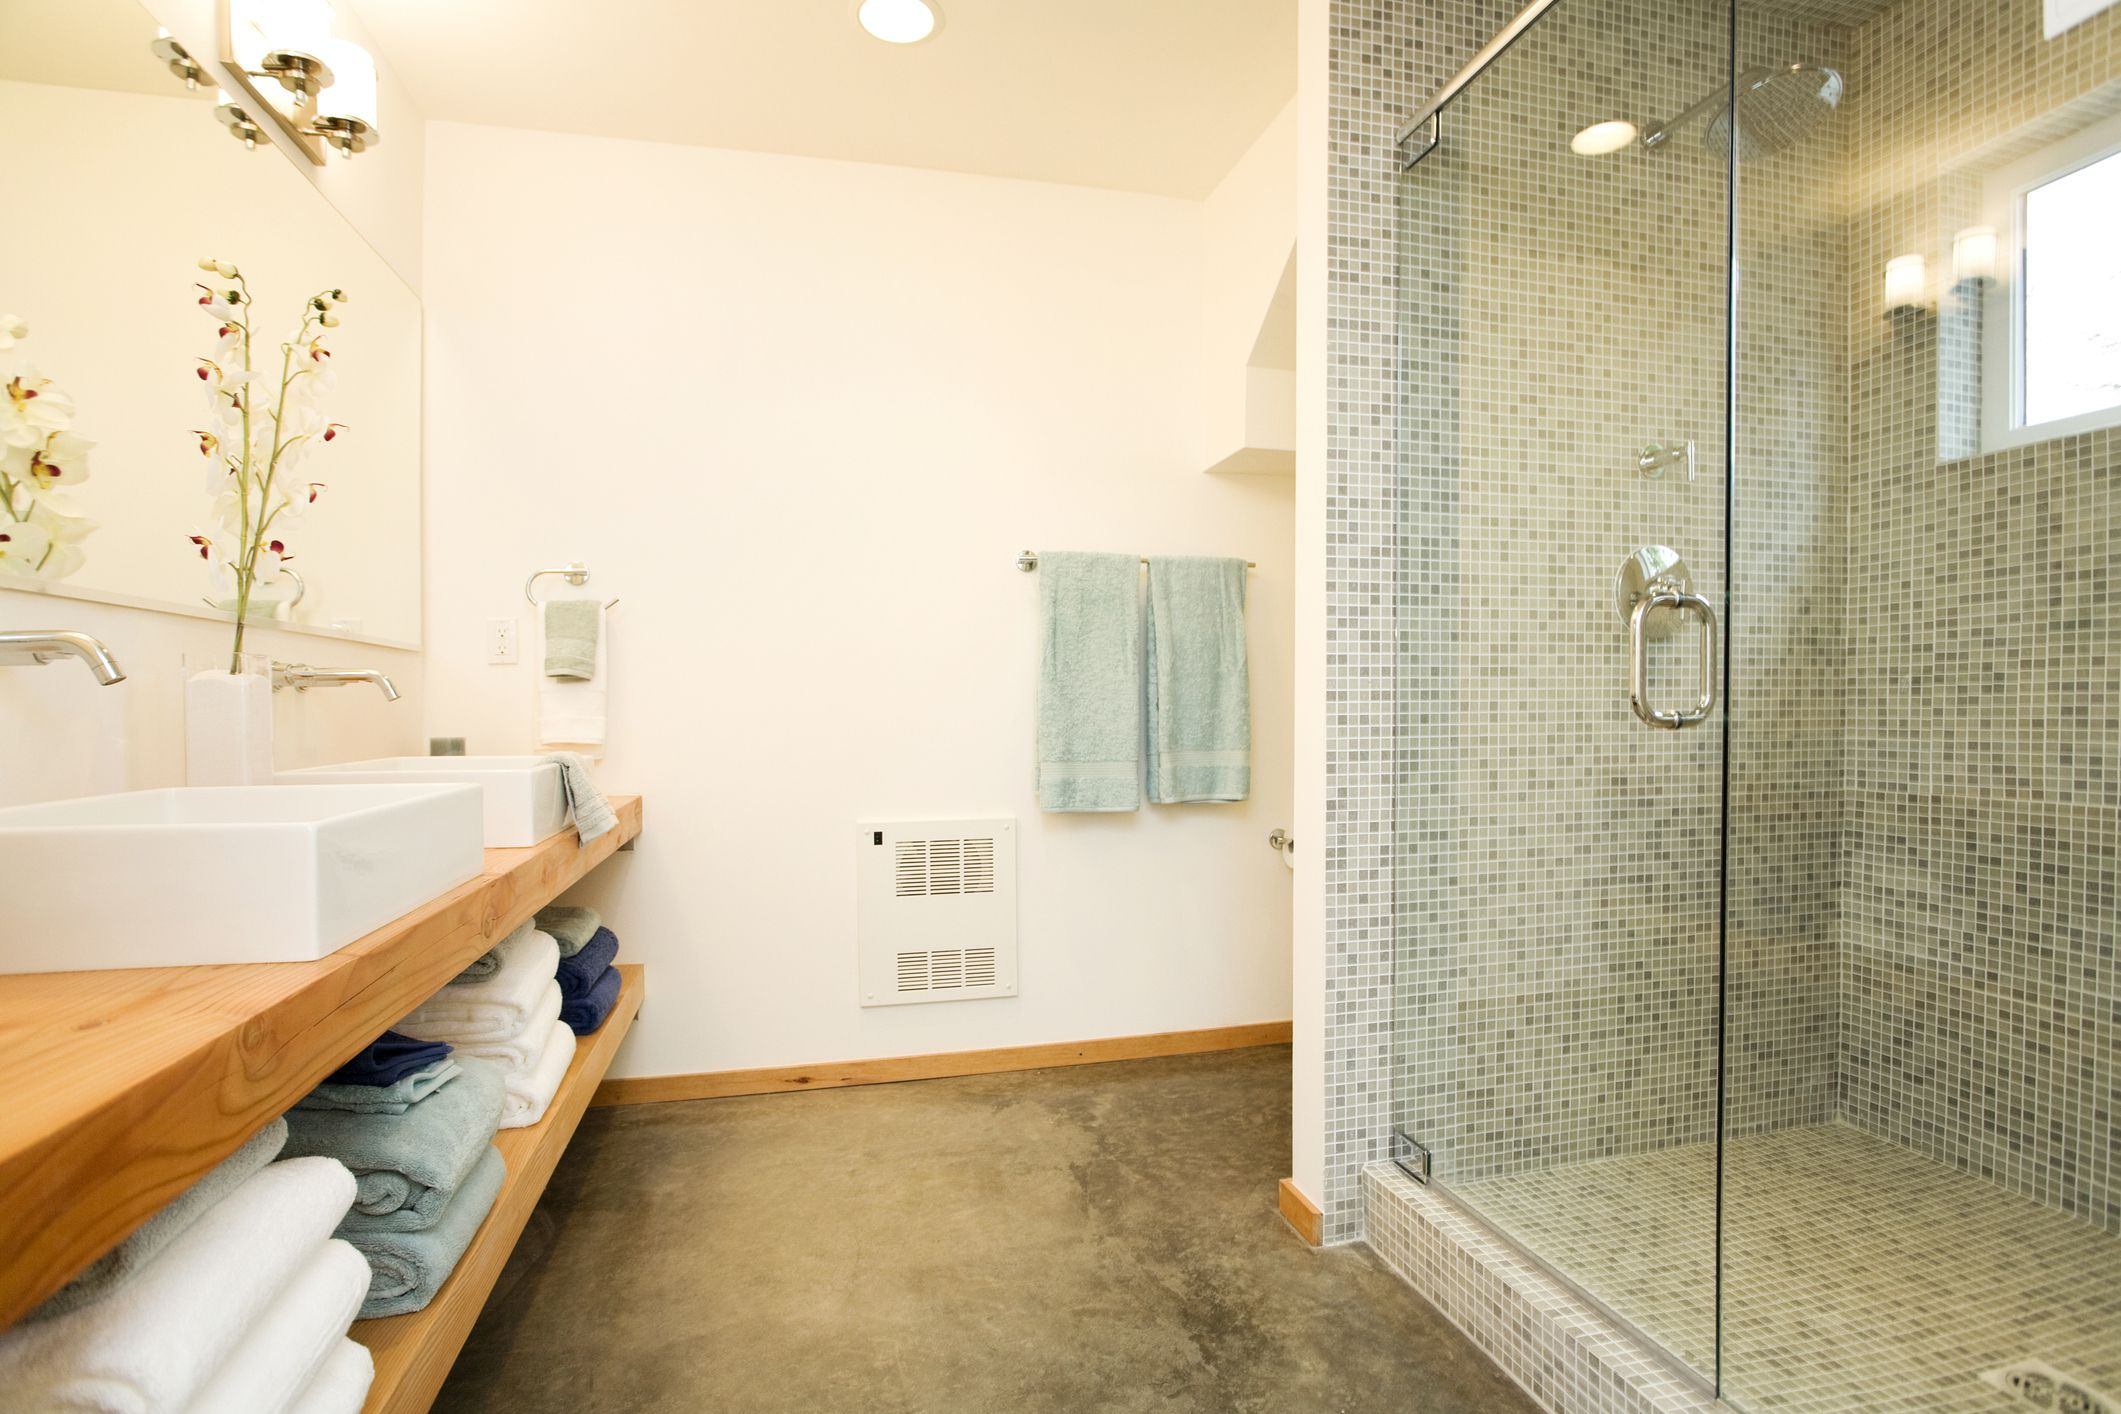 A Look at the Use of Concrete Floors in Bathrooms